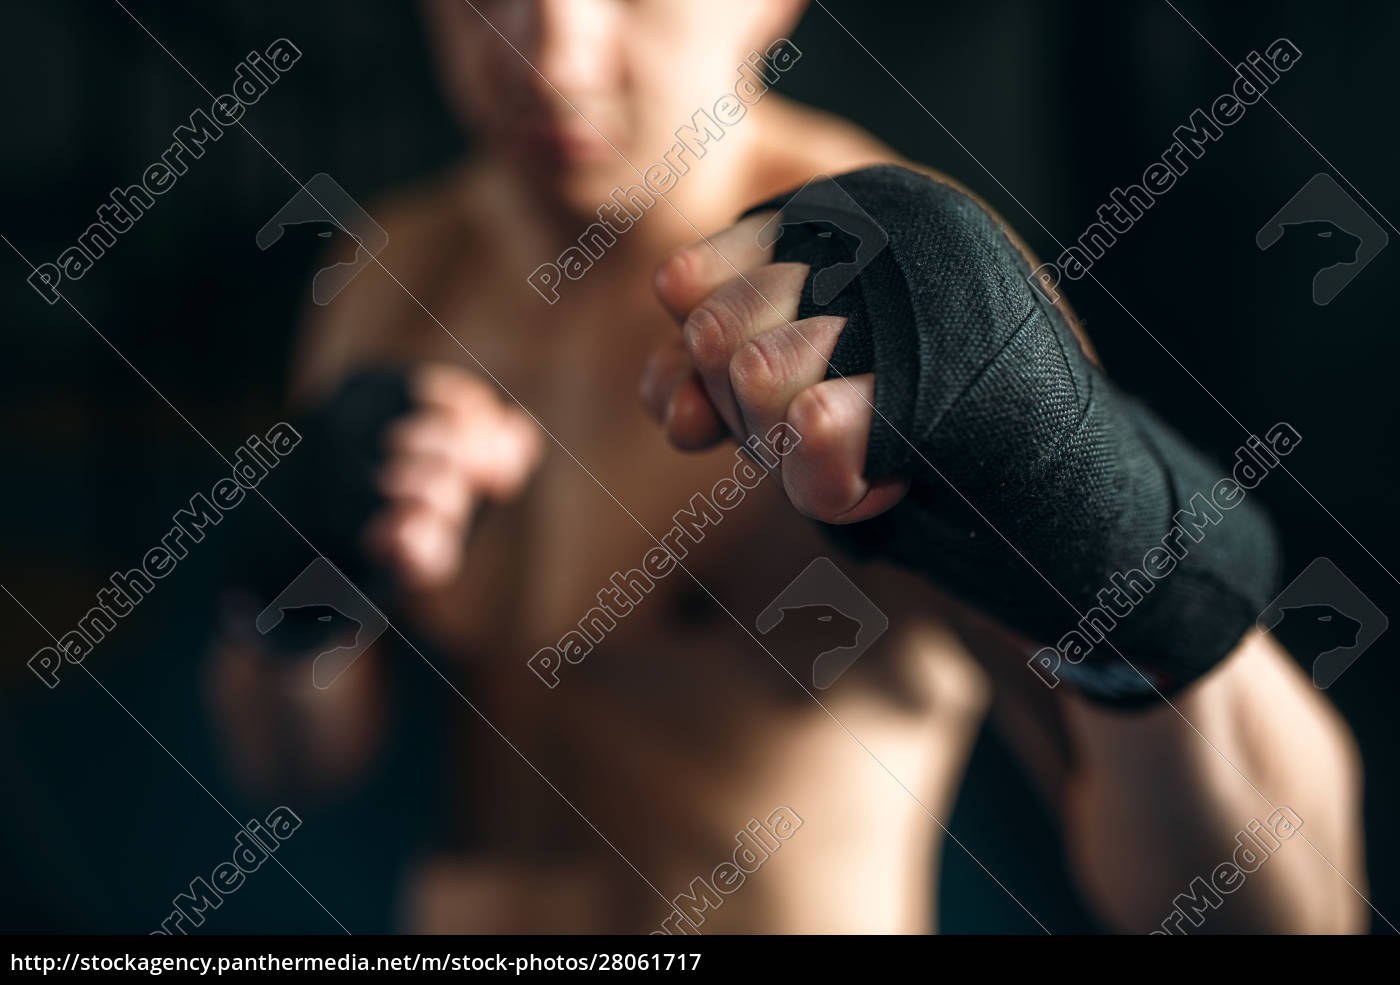 muscular, male, person, in, black, bandages - 28061717